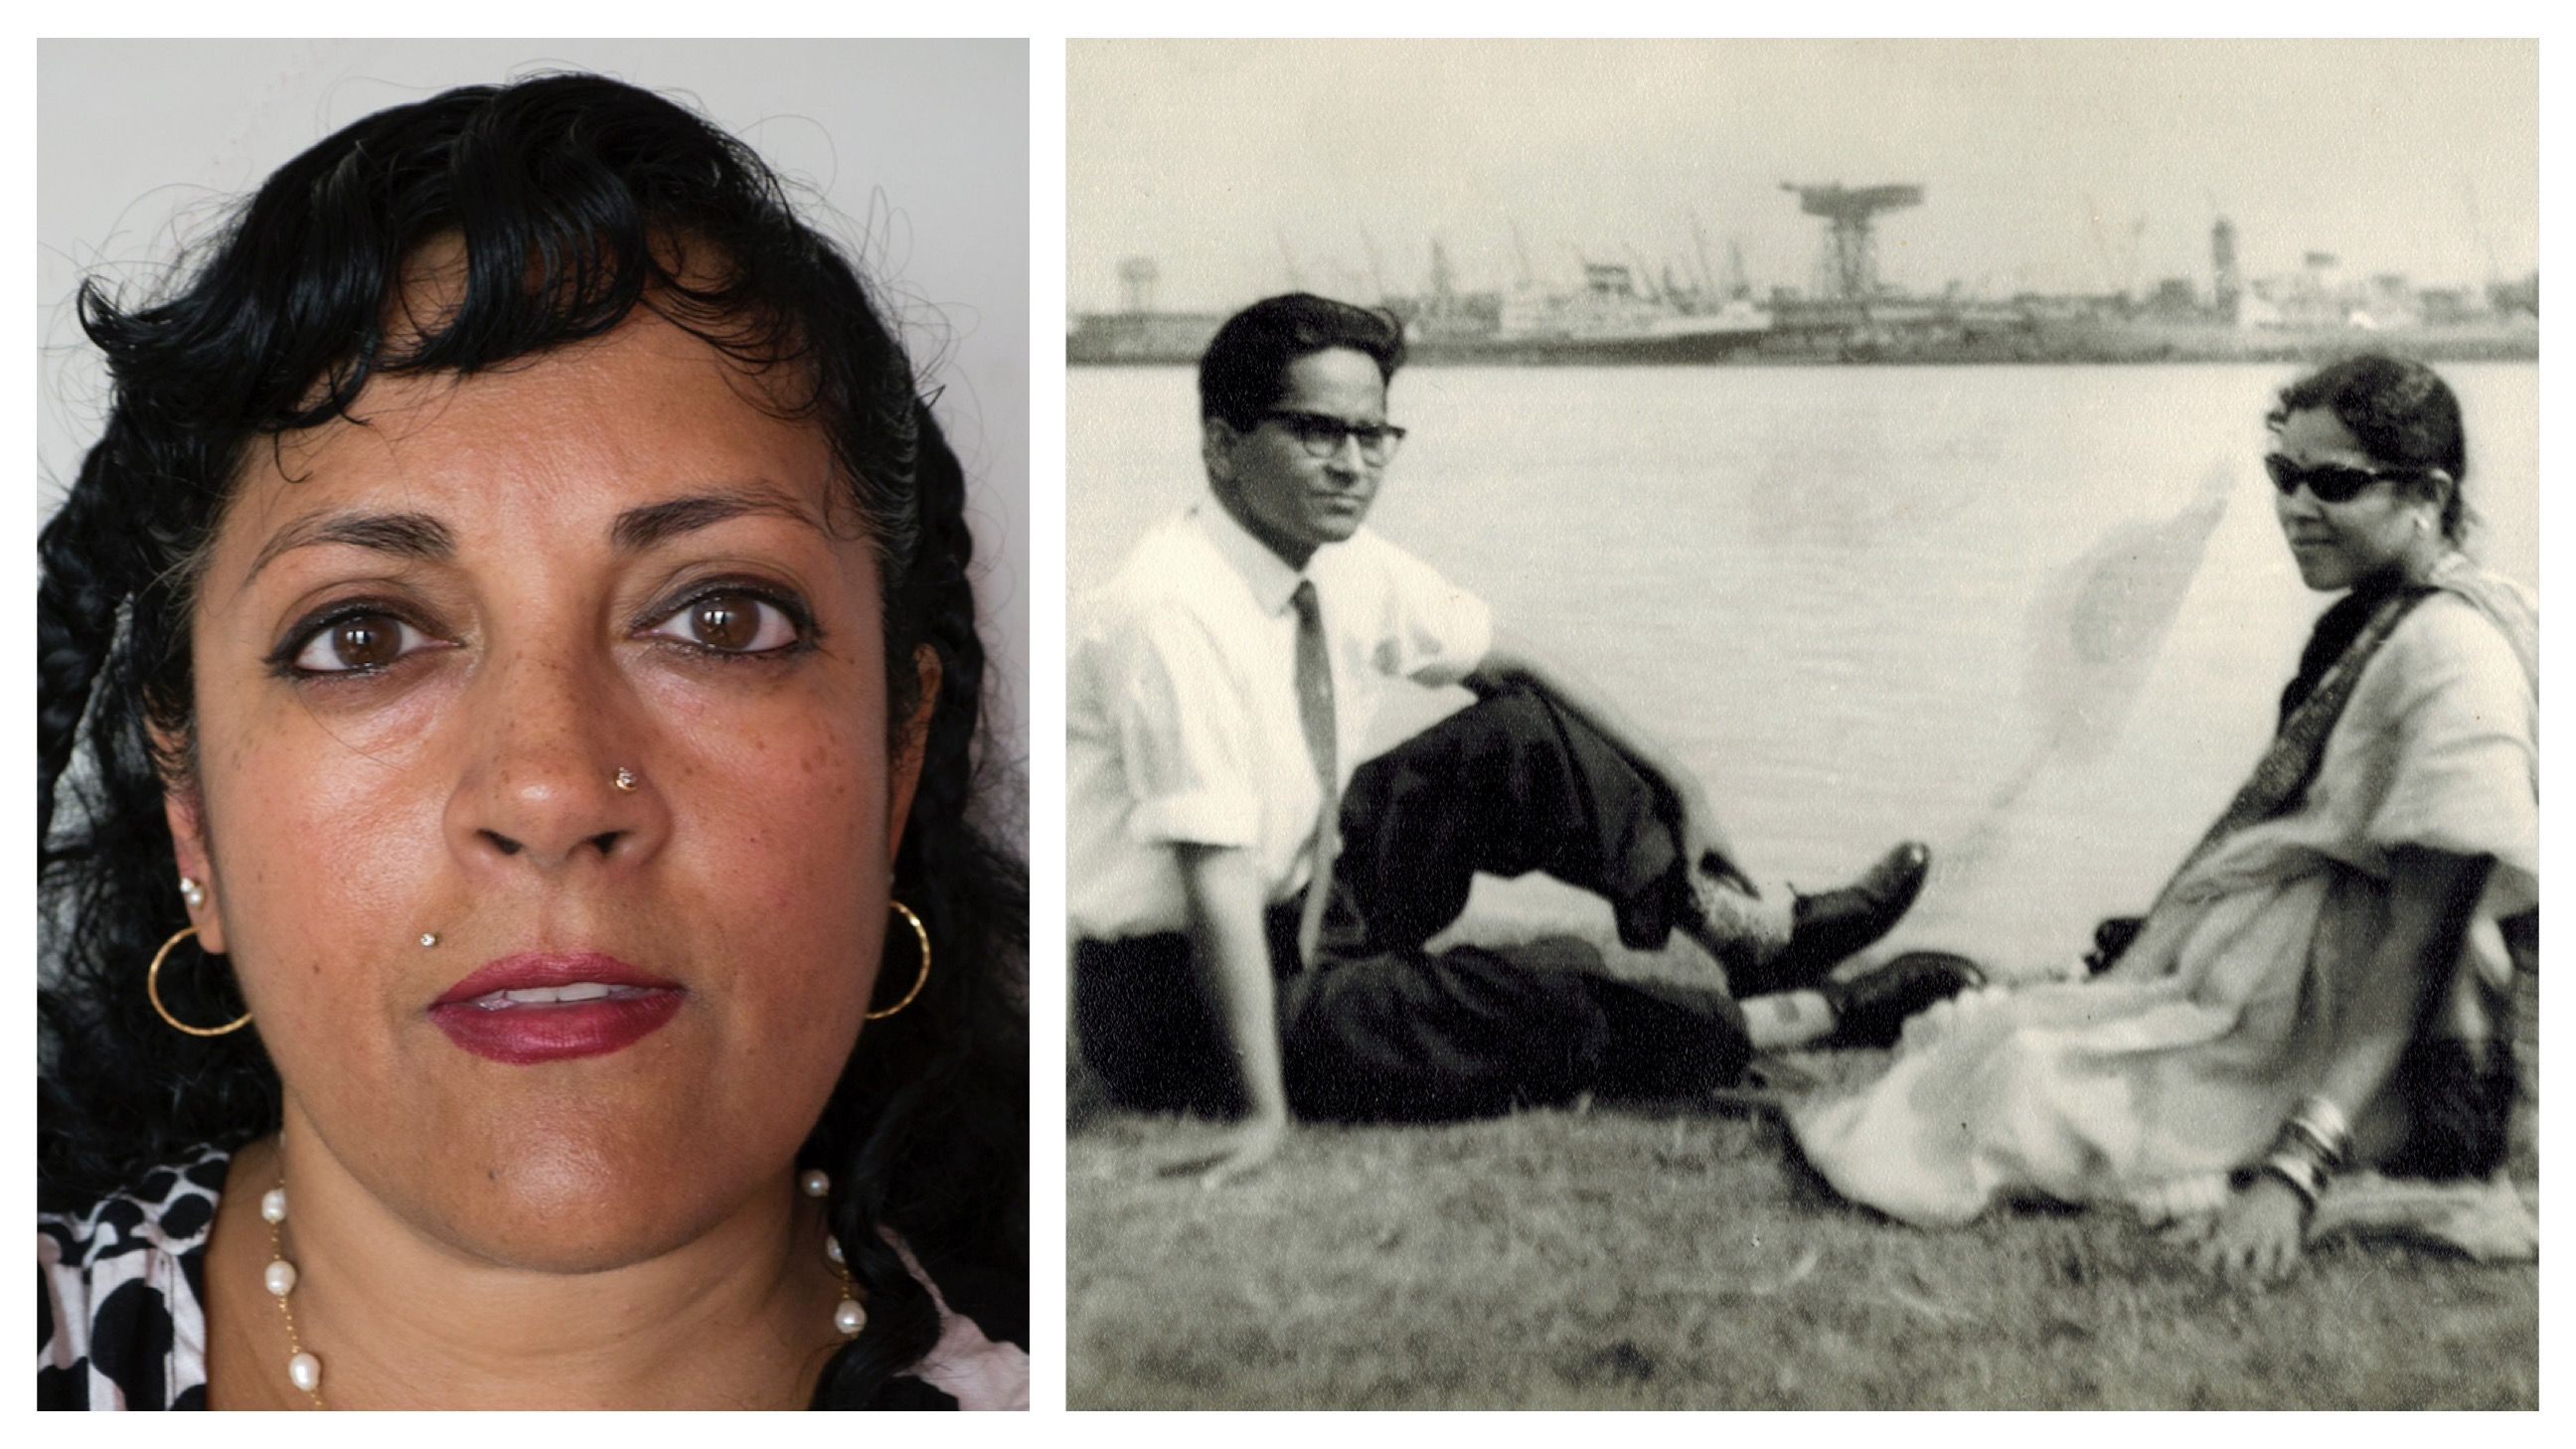 A South Asian American woman is on the left of the picture; on the right is a black and white photograph of an Indian couple sitting on the grass casually along a waterfront.